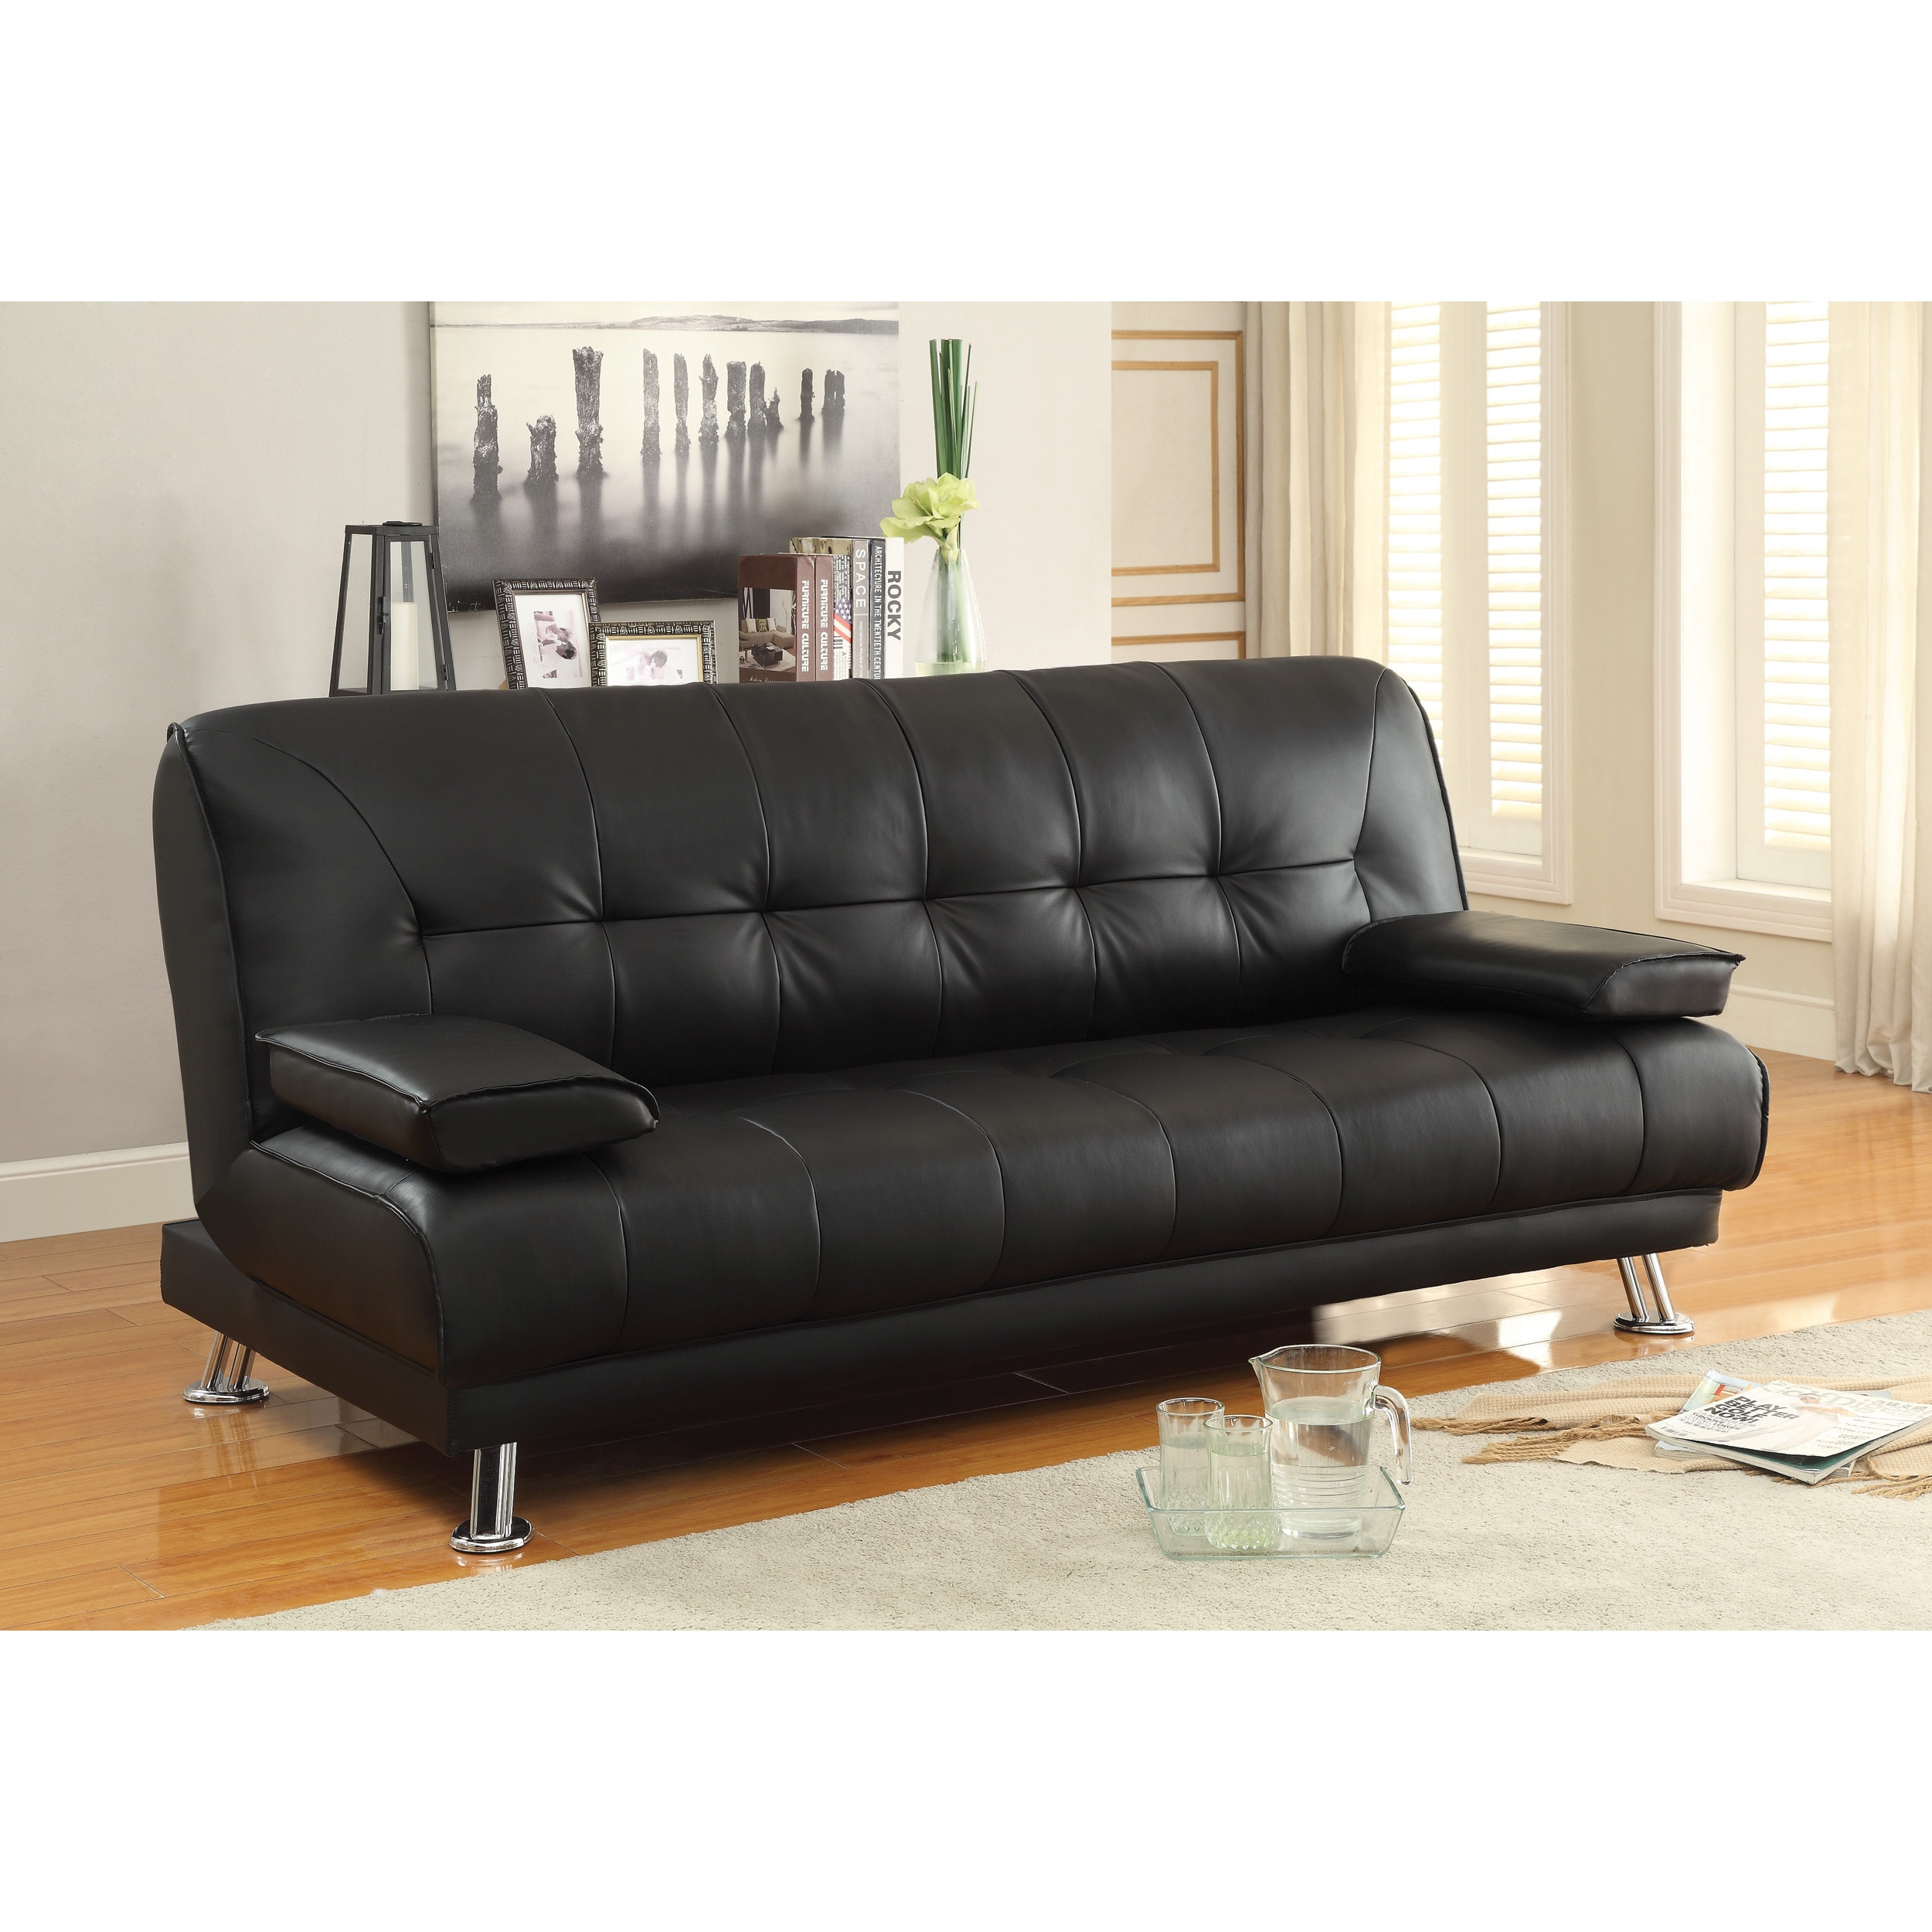 Coaster Company Black Leatherette Sofa Bed Free Shipping Today 12189325